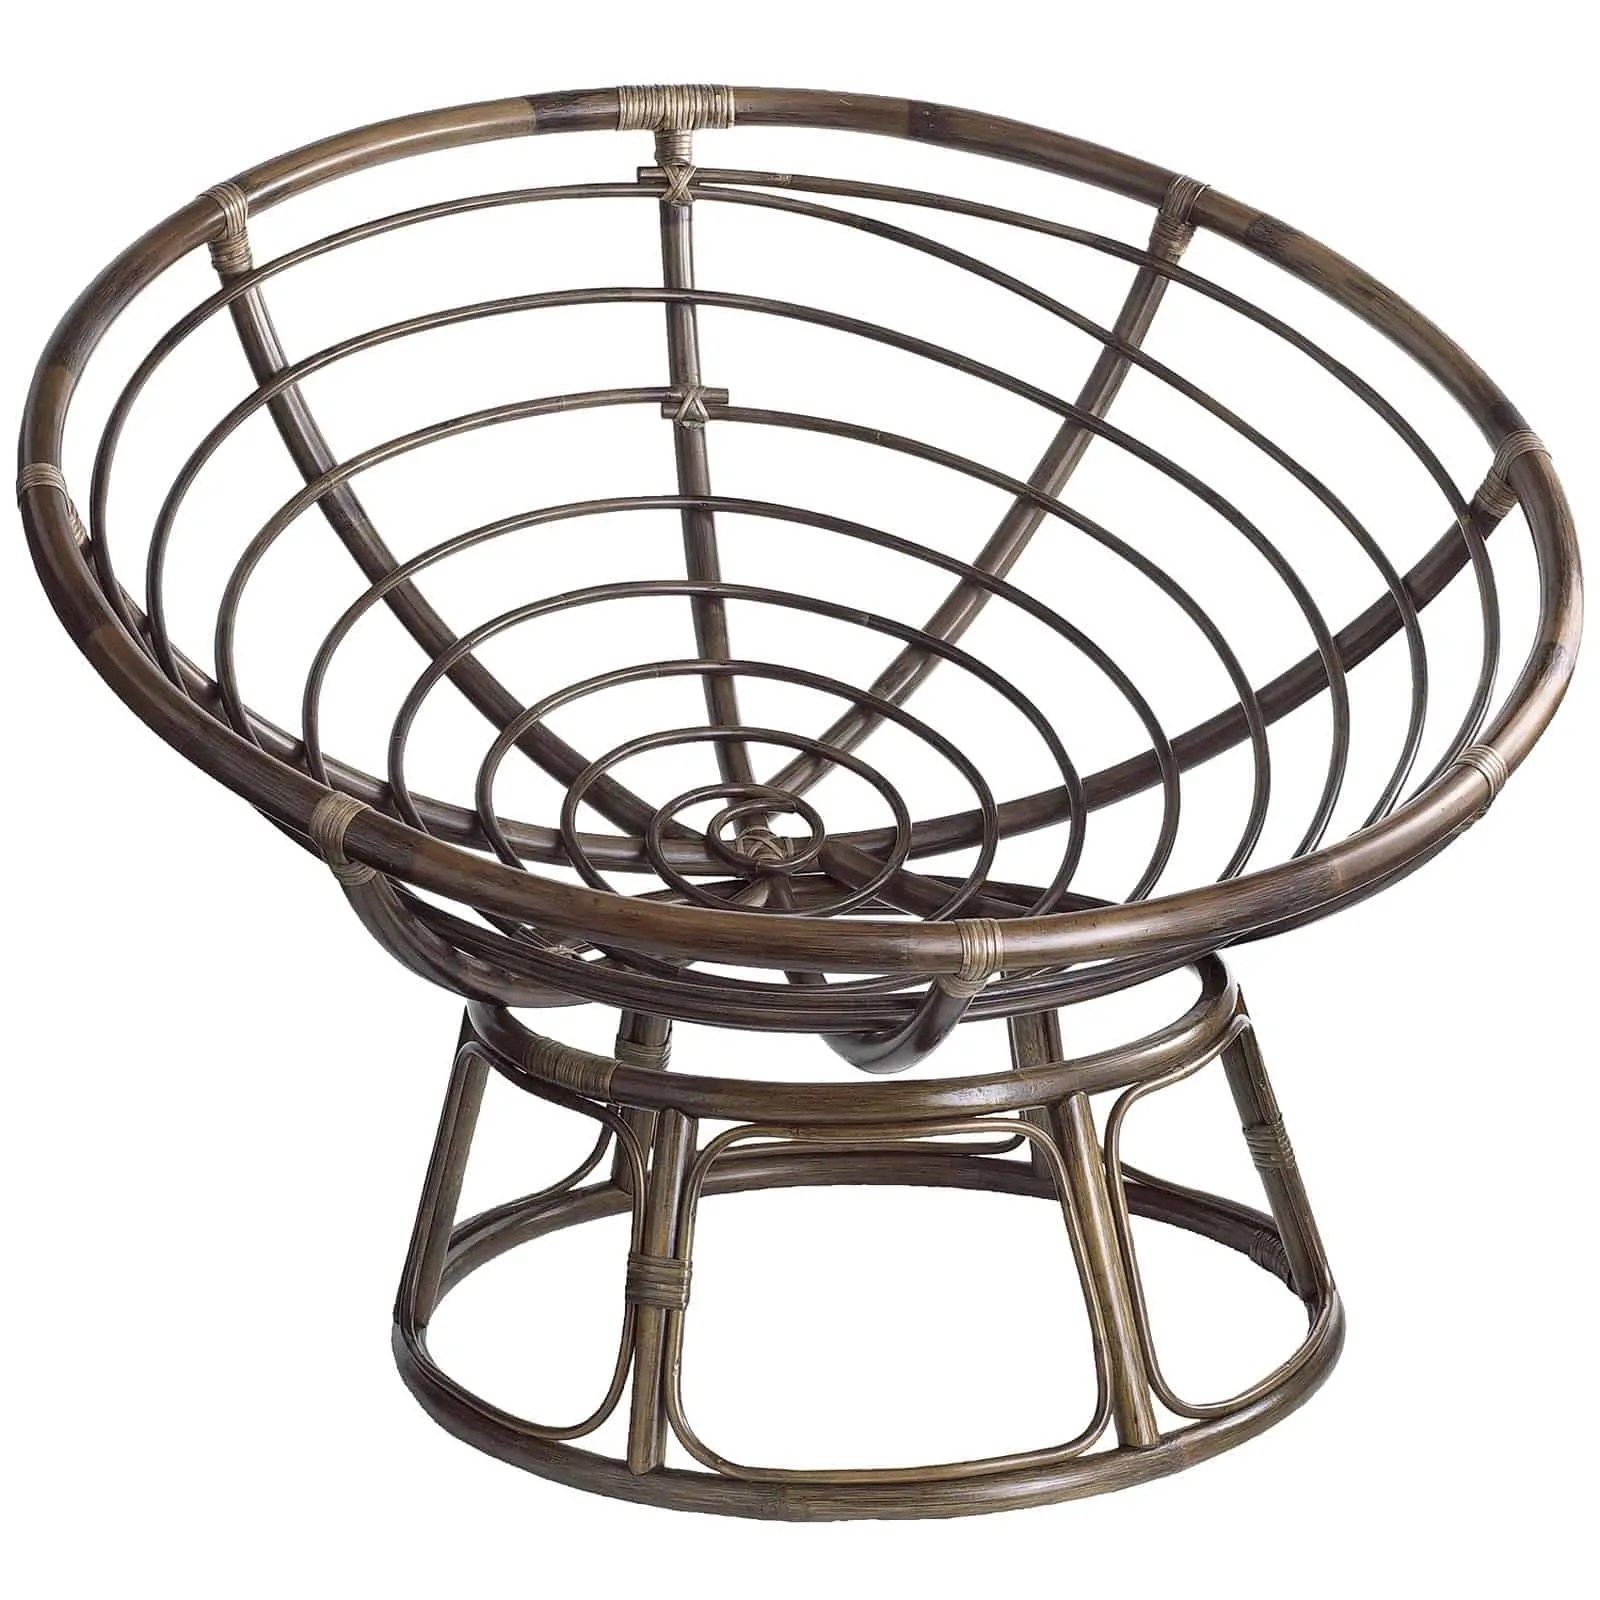 Metal Papasan Chair The Papasan Chair A Classic Design With Different Versions